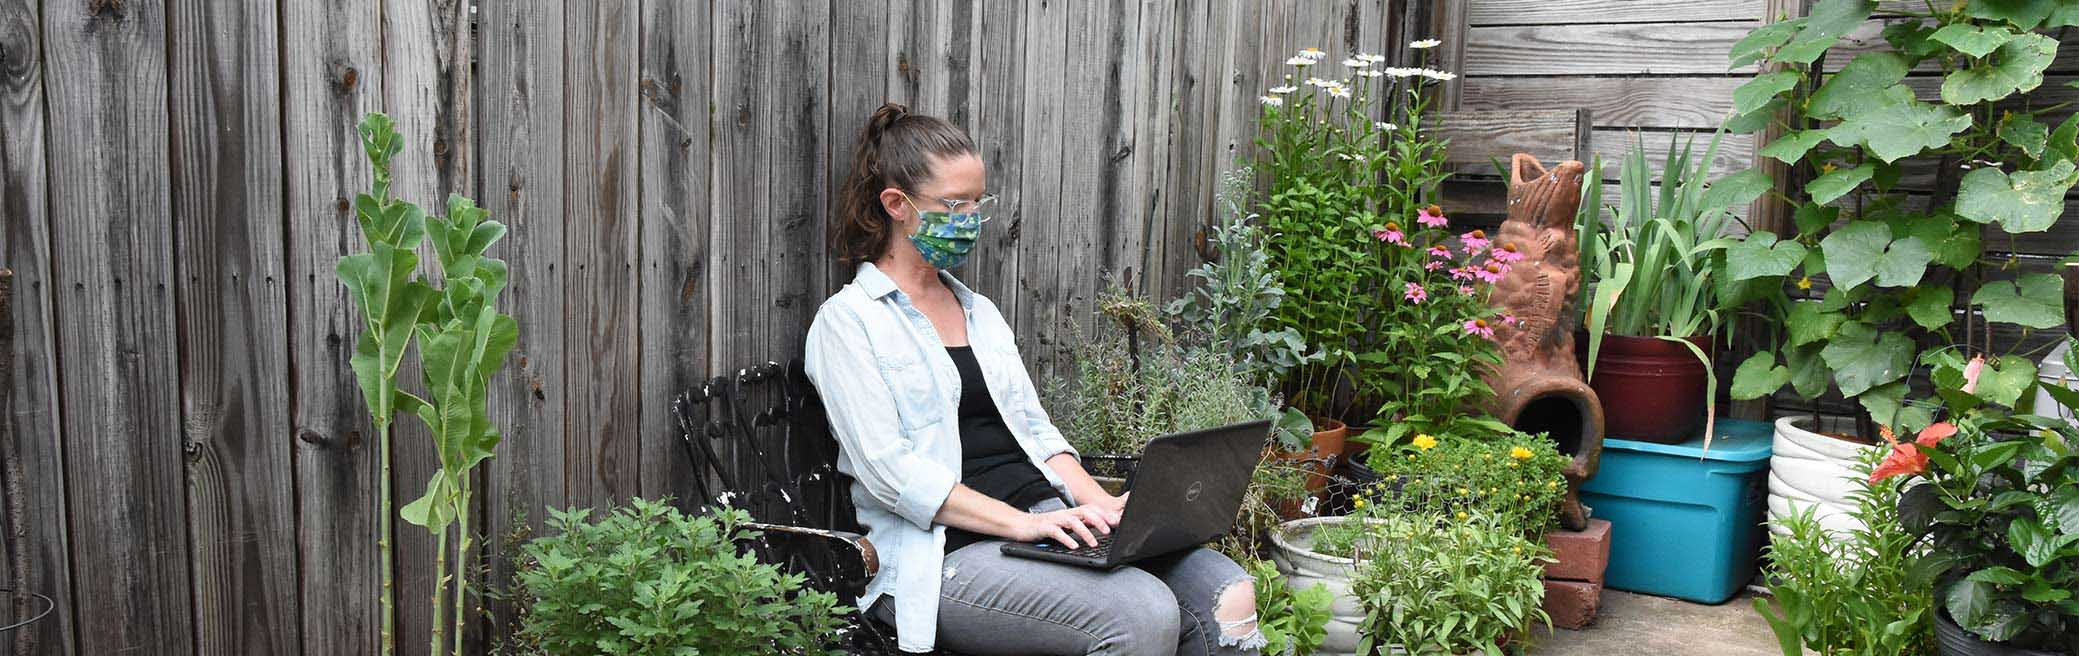 Lady in mask with a laptop